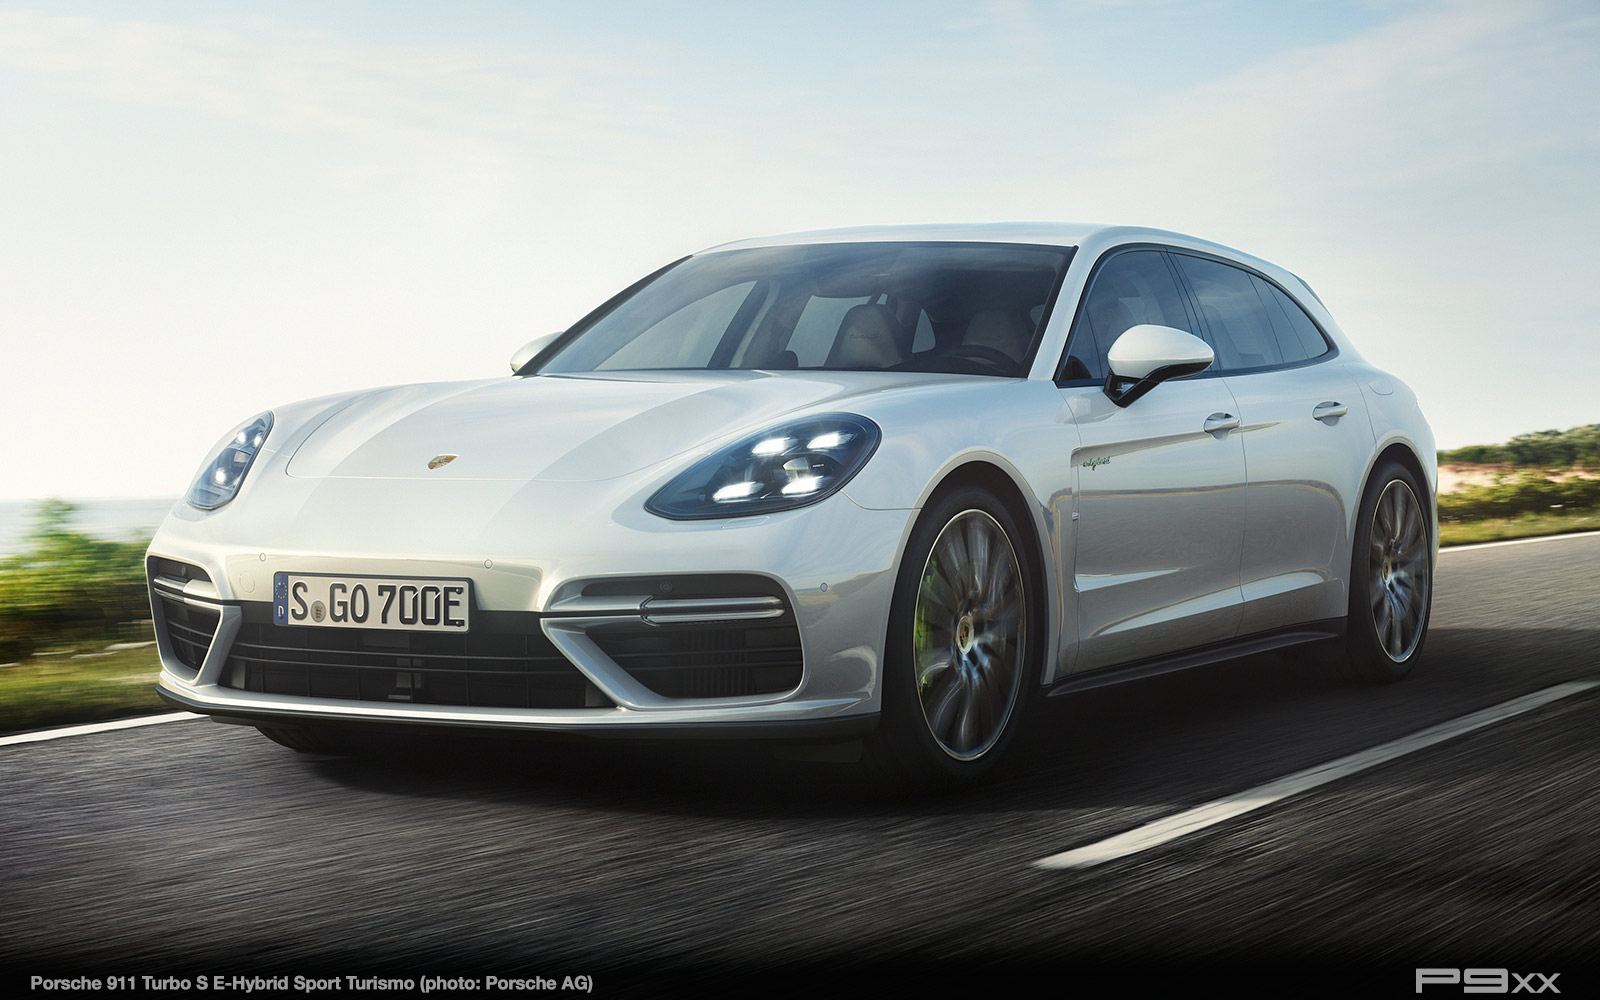 in detail panamera turbo s e hybrid sport turismo p9xx. Black Bedroom Furniture Sets. Home Design Ideas